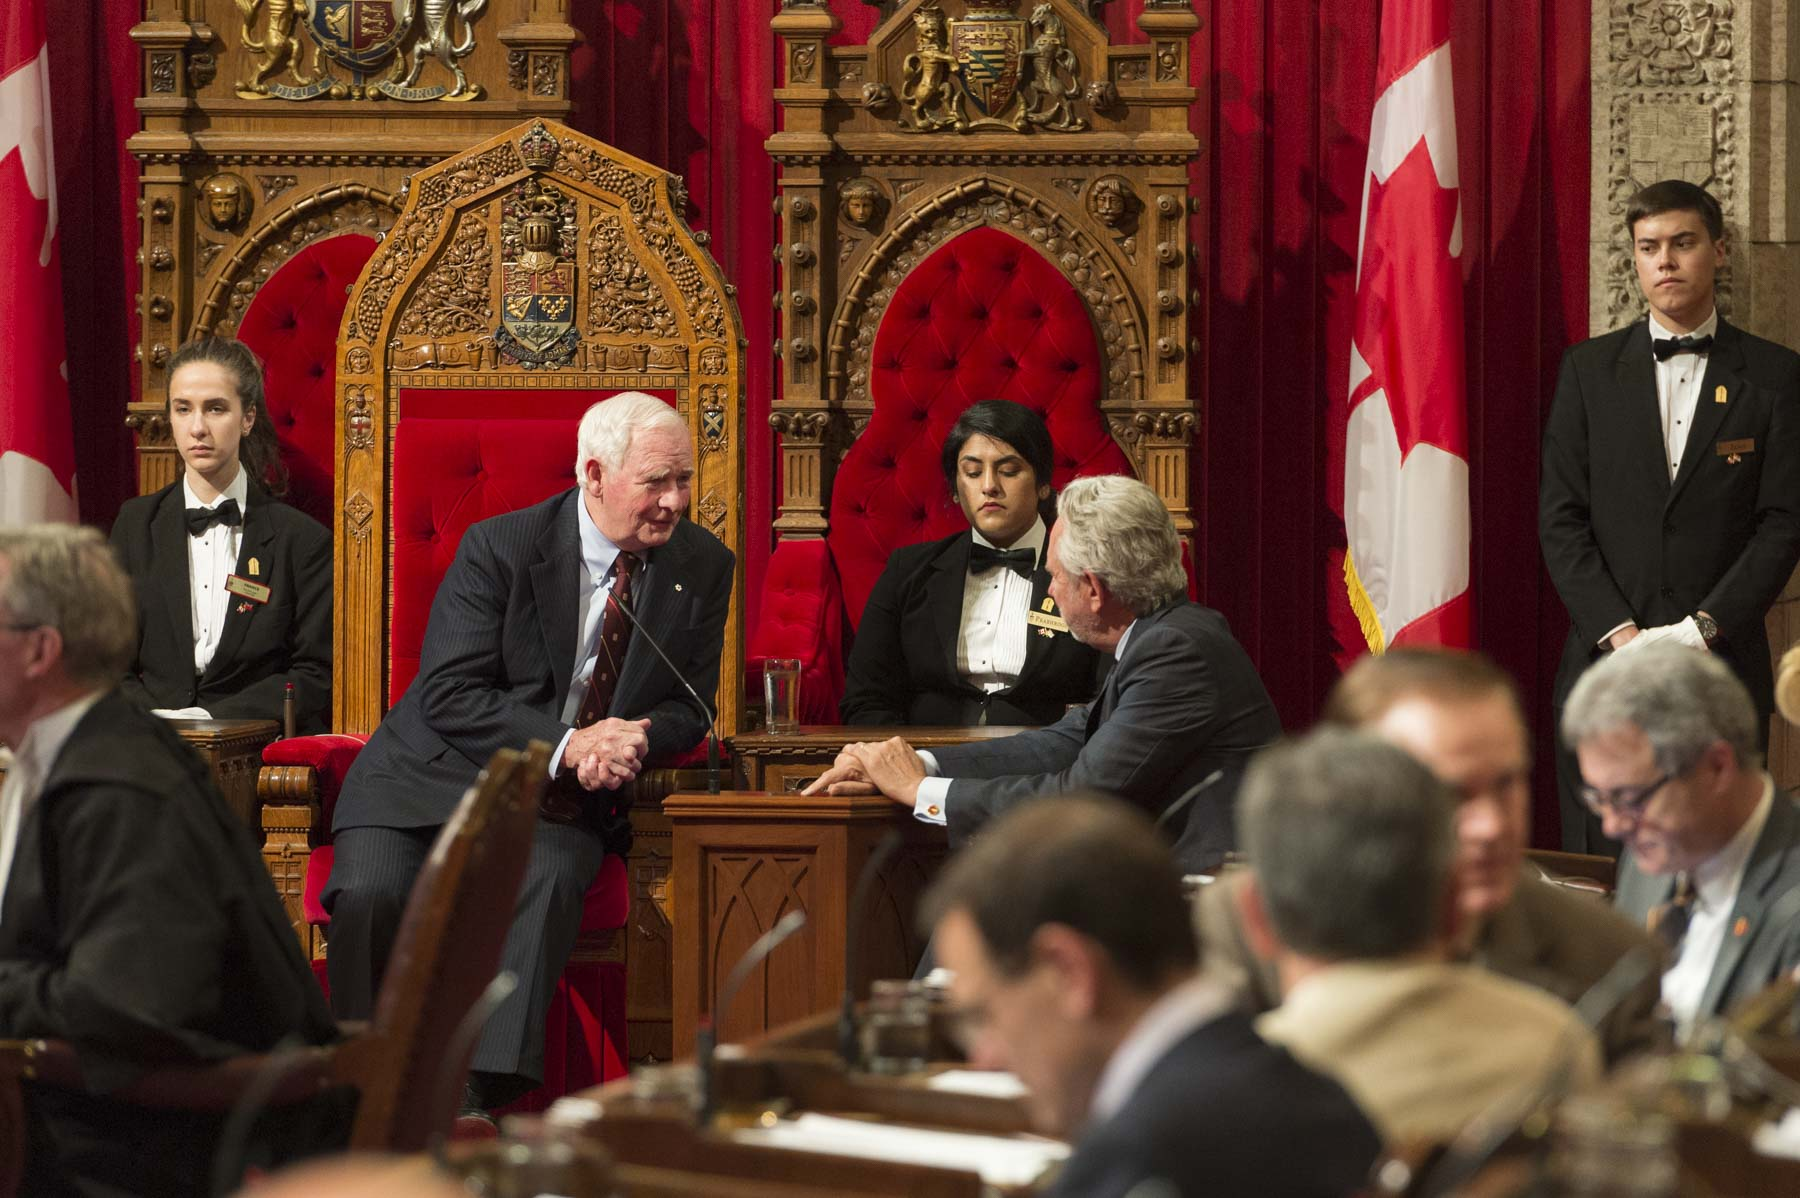 The Governor General granted Royal Assent to bills passed by both the Senate and the House of Commons, thereby making them Acts of Parliament.